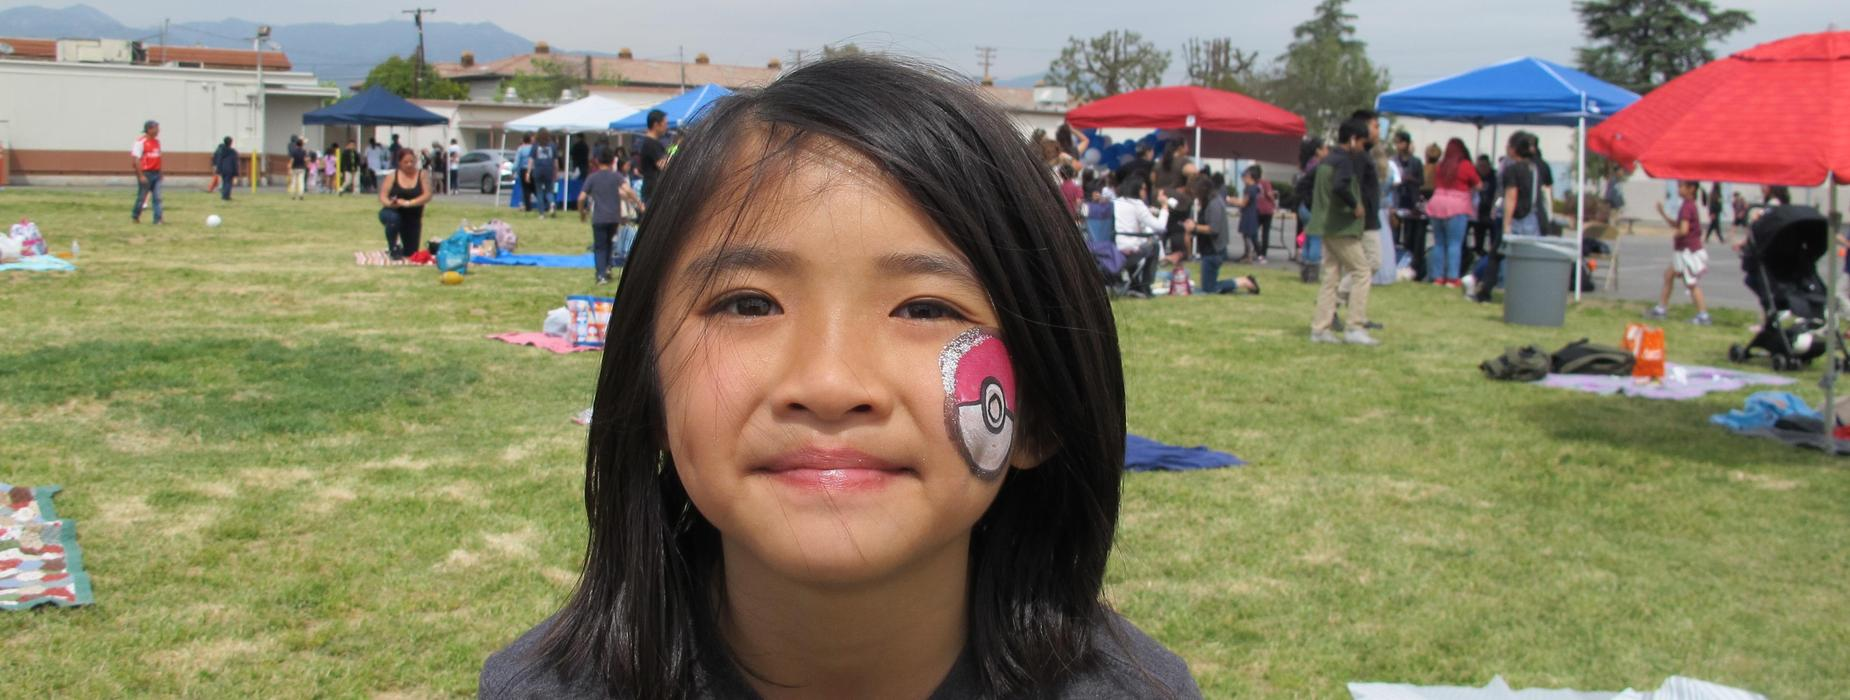 Marguerita Student gets a poke ball face painting